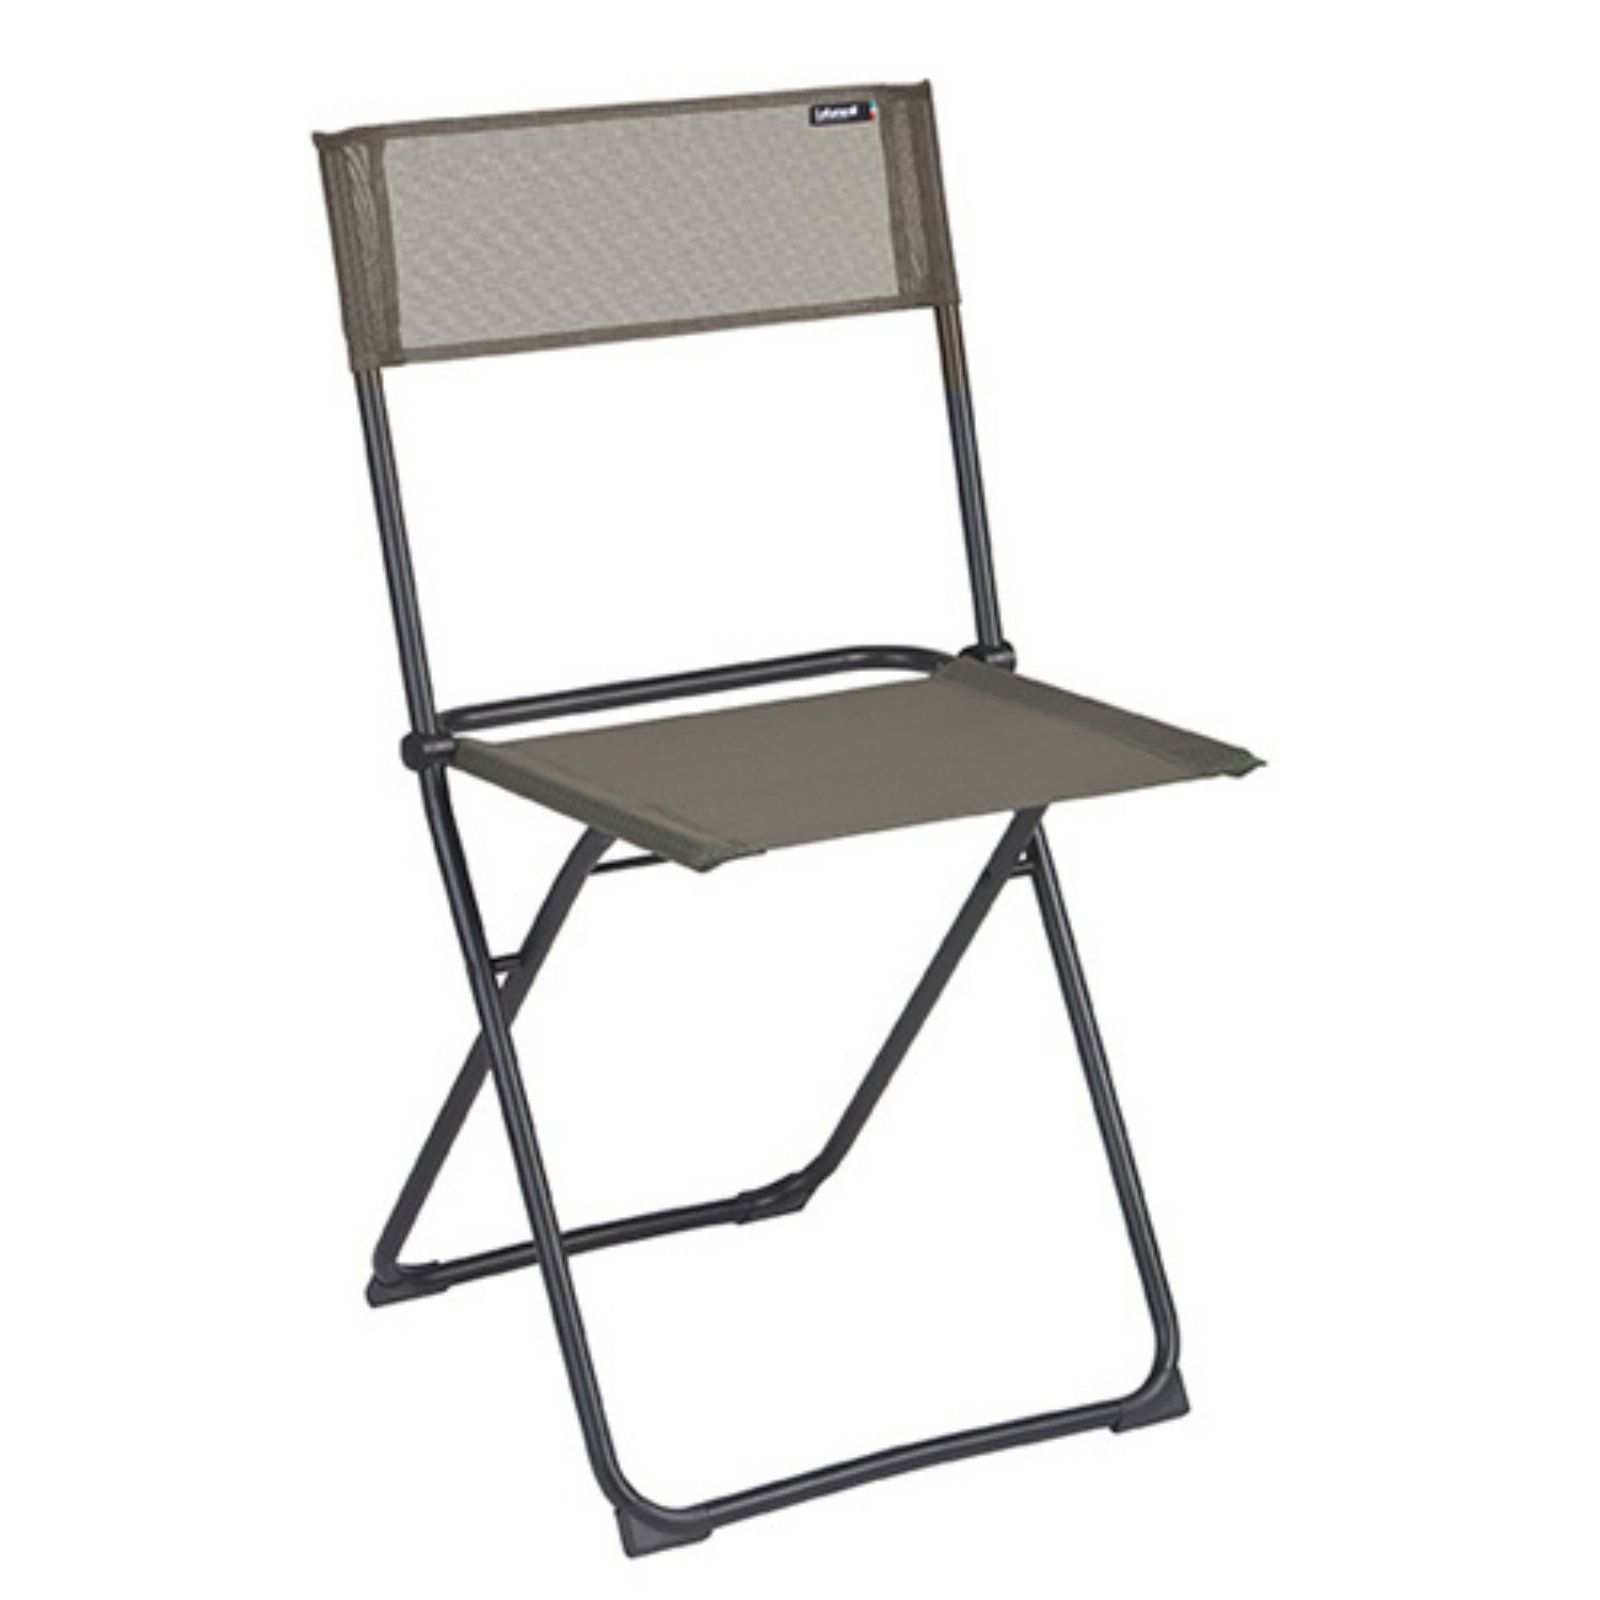 and Beach Chairs During Travel- Black Camco Heavy Duty Chair Rack- Hook on RV Ladder to Support Folding Chairs 51490 Picnic Chairs